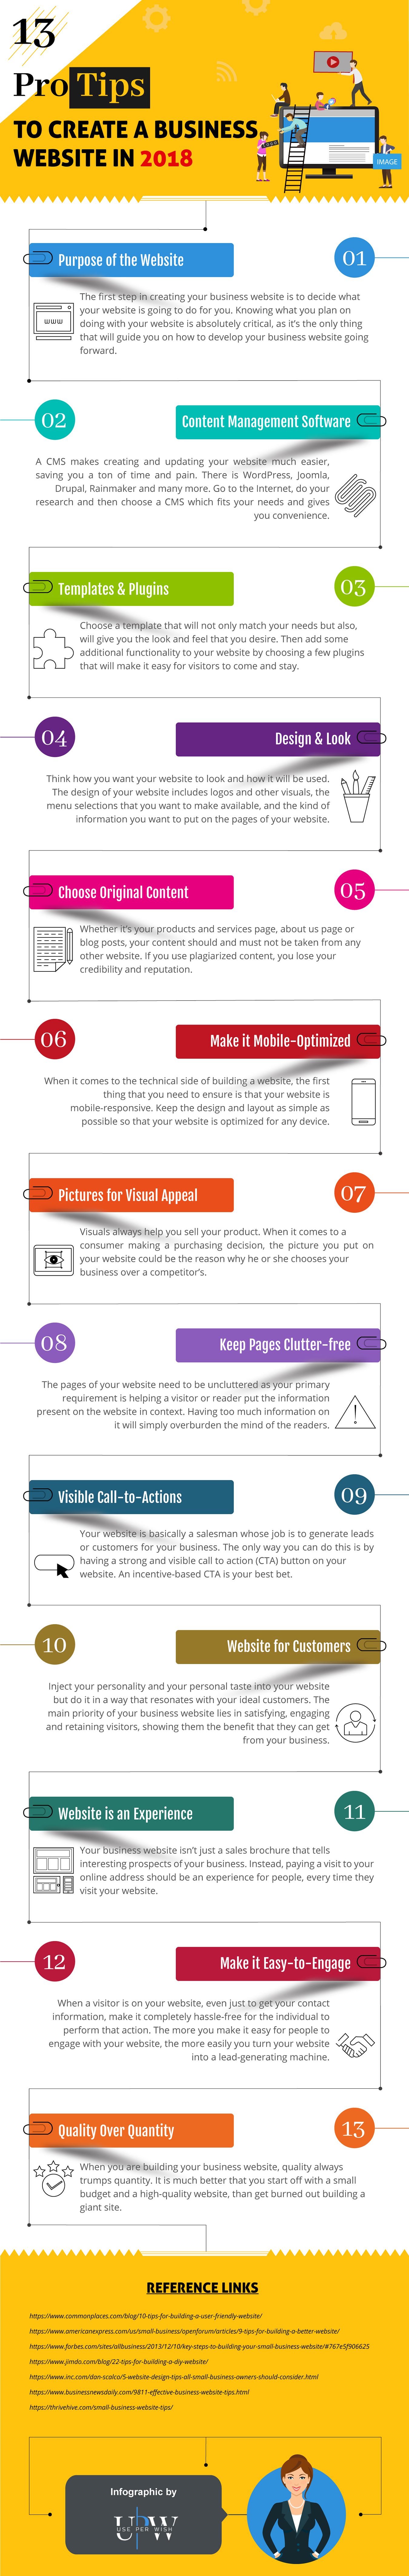 Creating your business website - infographic